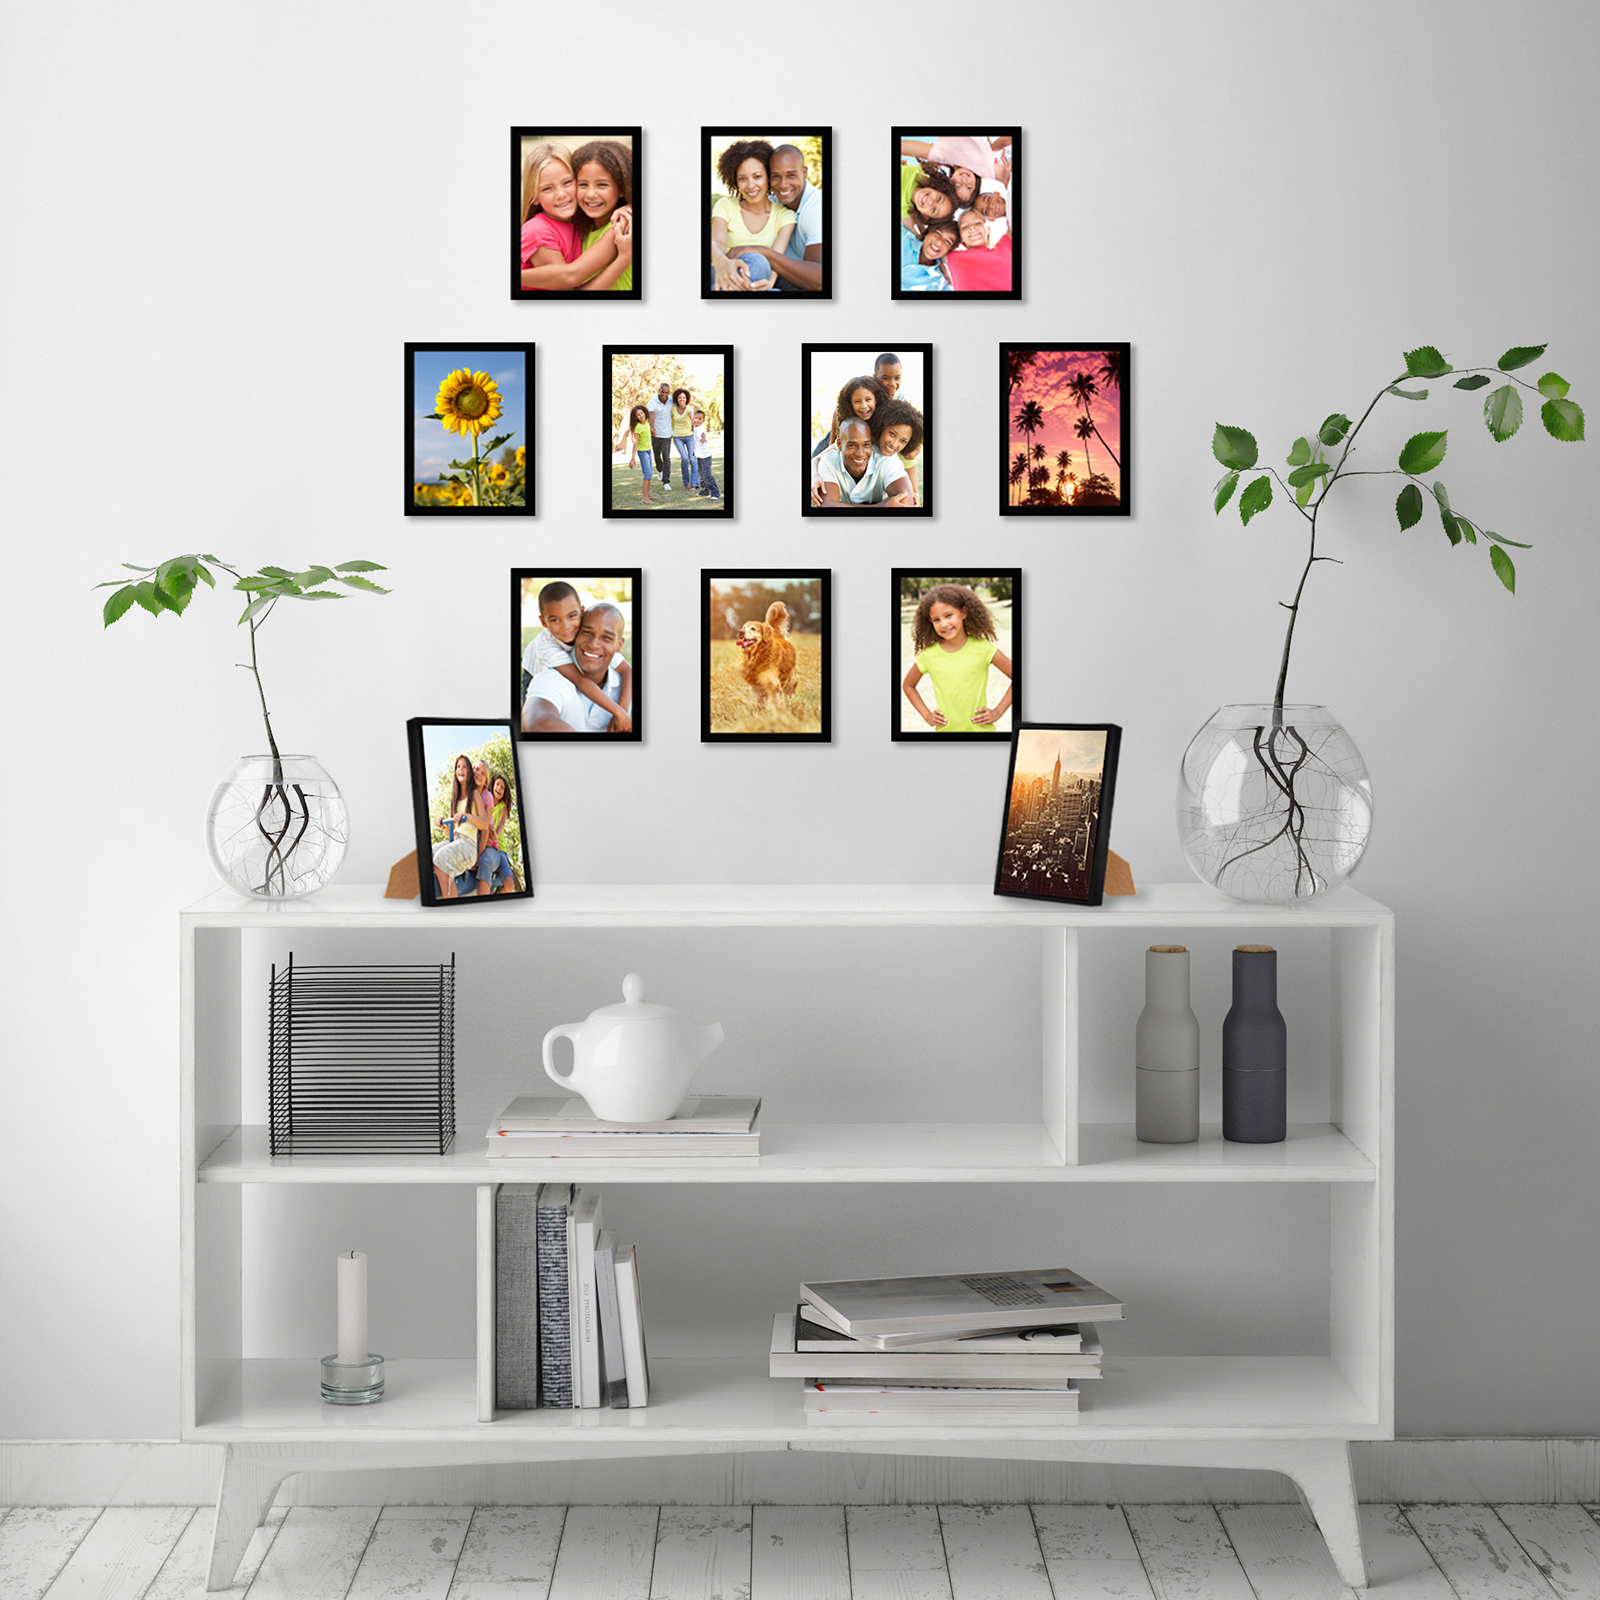 miniature 34 - Americanflat Picture Frame Black Plastic 4x6 5x7 8x10 Wall Tabletop 6 or 12 Pack